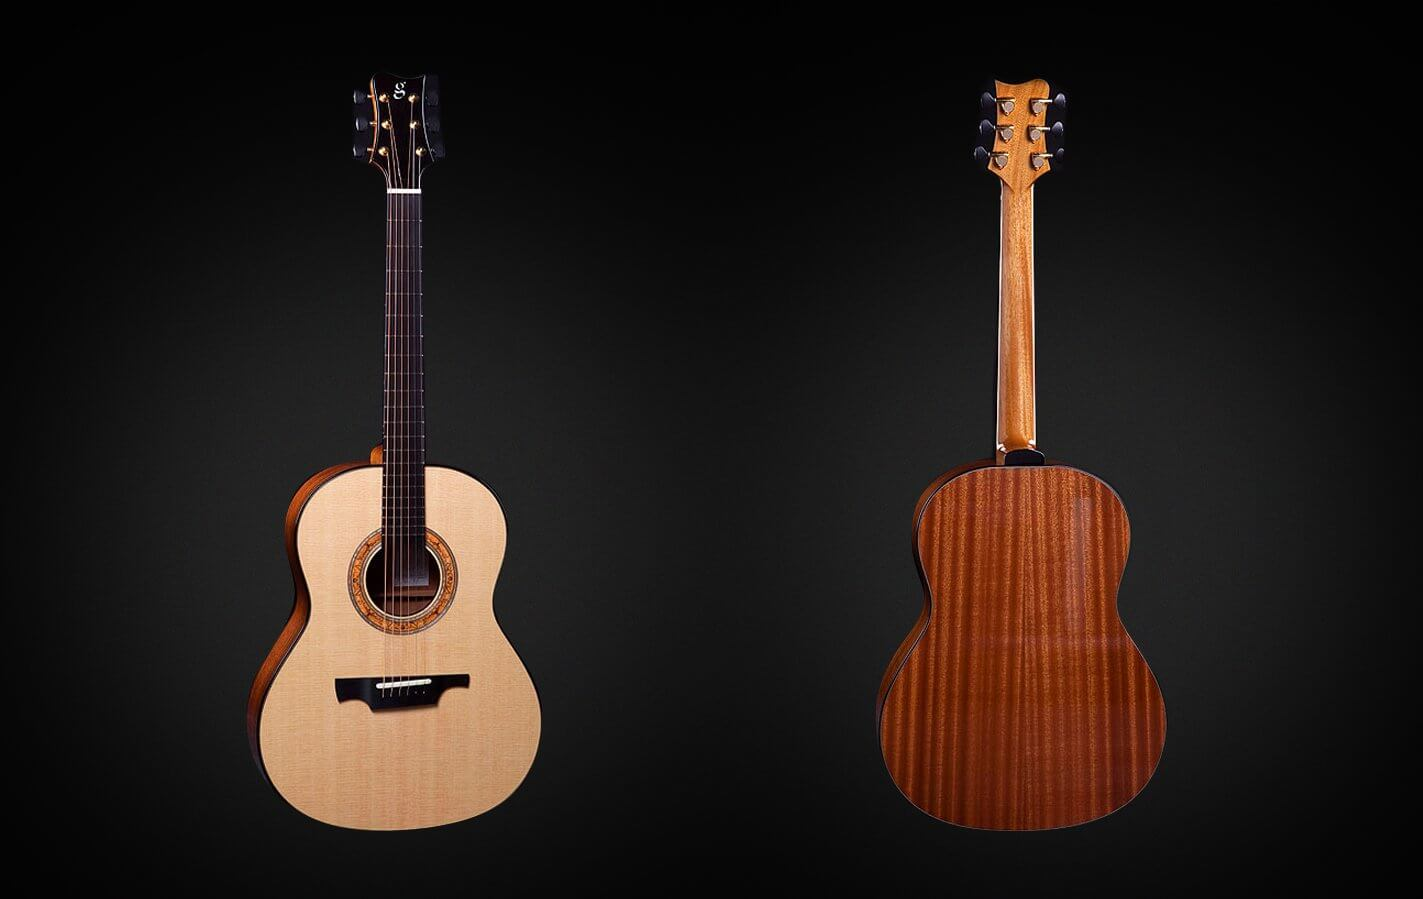 Greenfield Guitars | Fine handmade Acoustic Guitars Model GF, Sitka spruce, sapele mahogany, non-cutaway